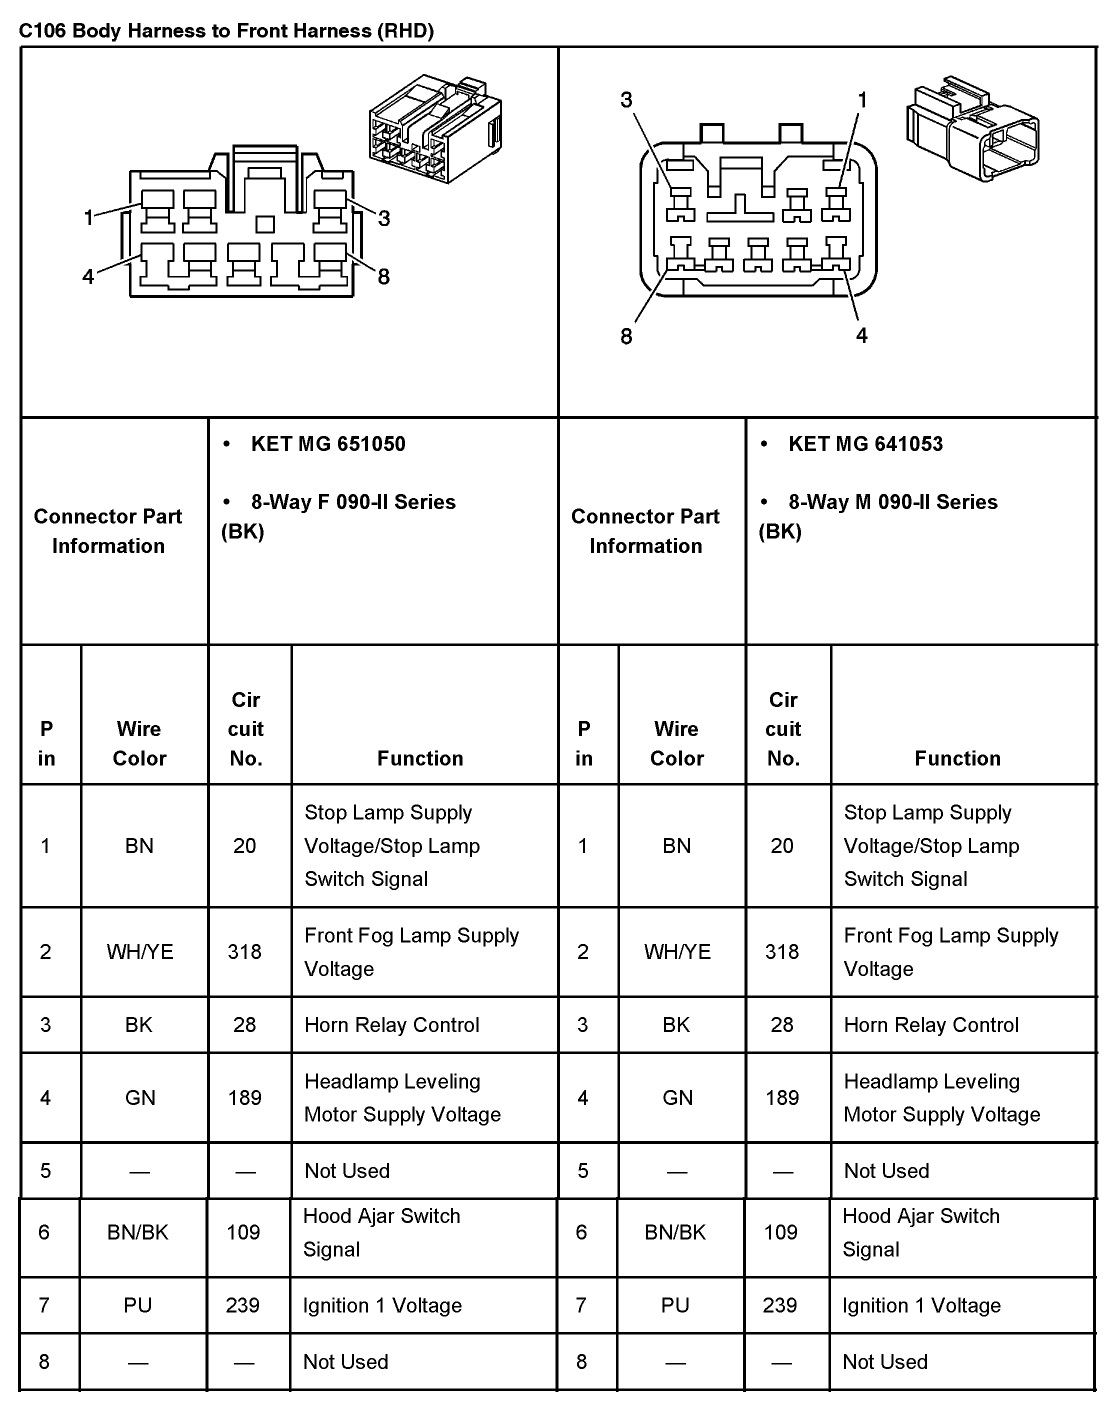 2009 E250 Fuse Diagram Wiring Library 2011 Ford Fiesta Box 2005 Aveo Master Connector List And Diagrams Rh Aveoforum Com 02 Explorer Instrument Panel